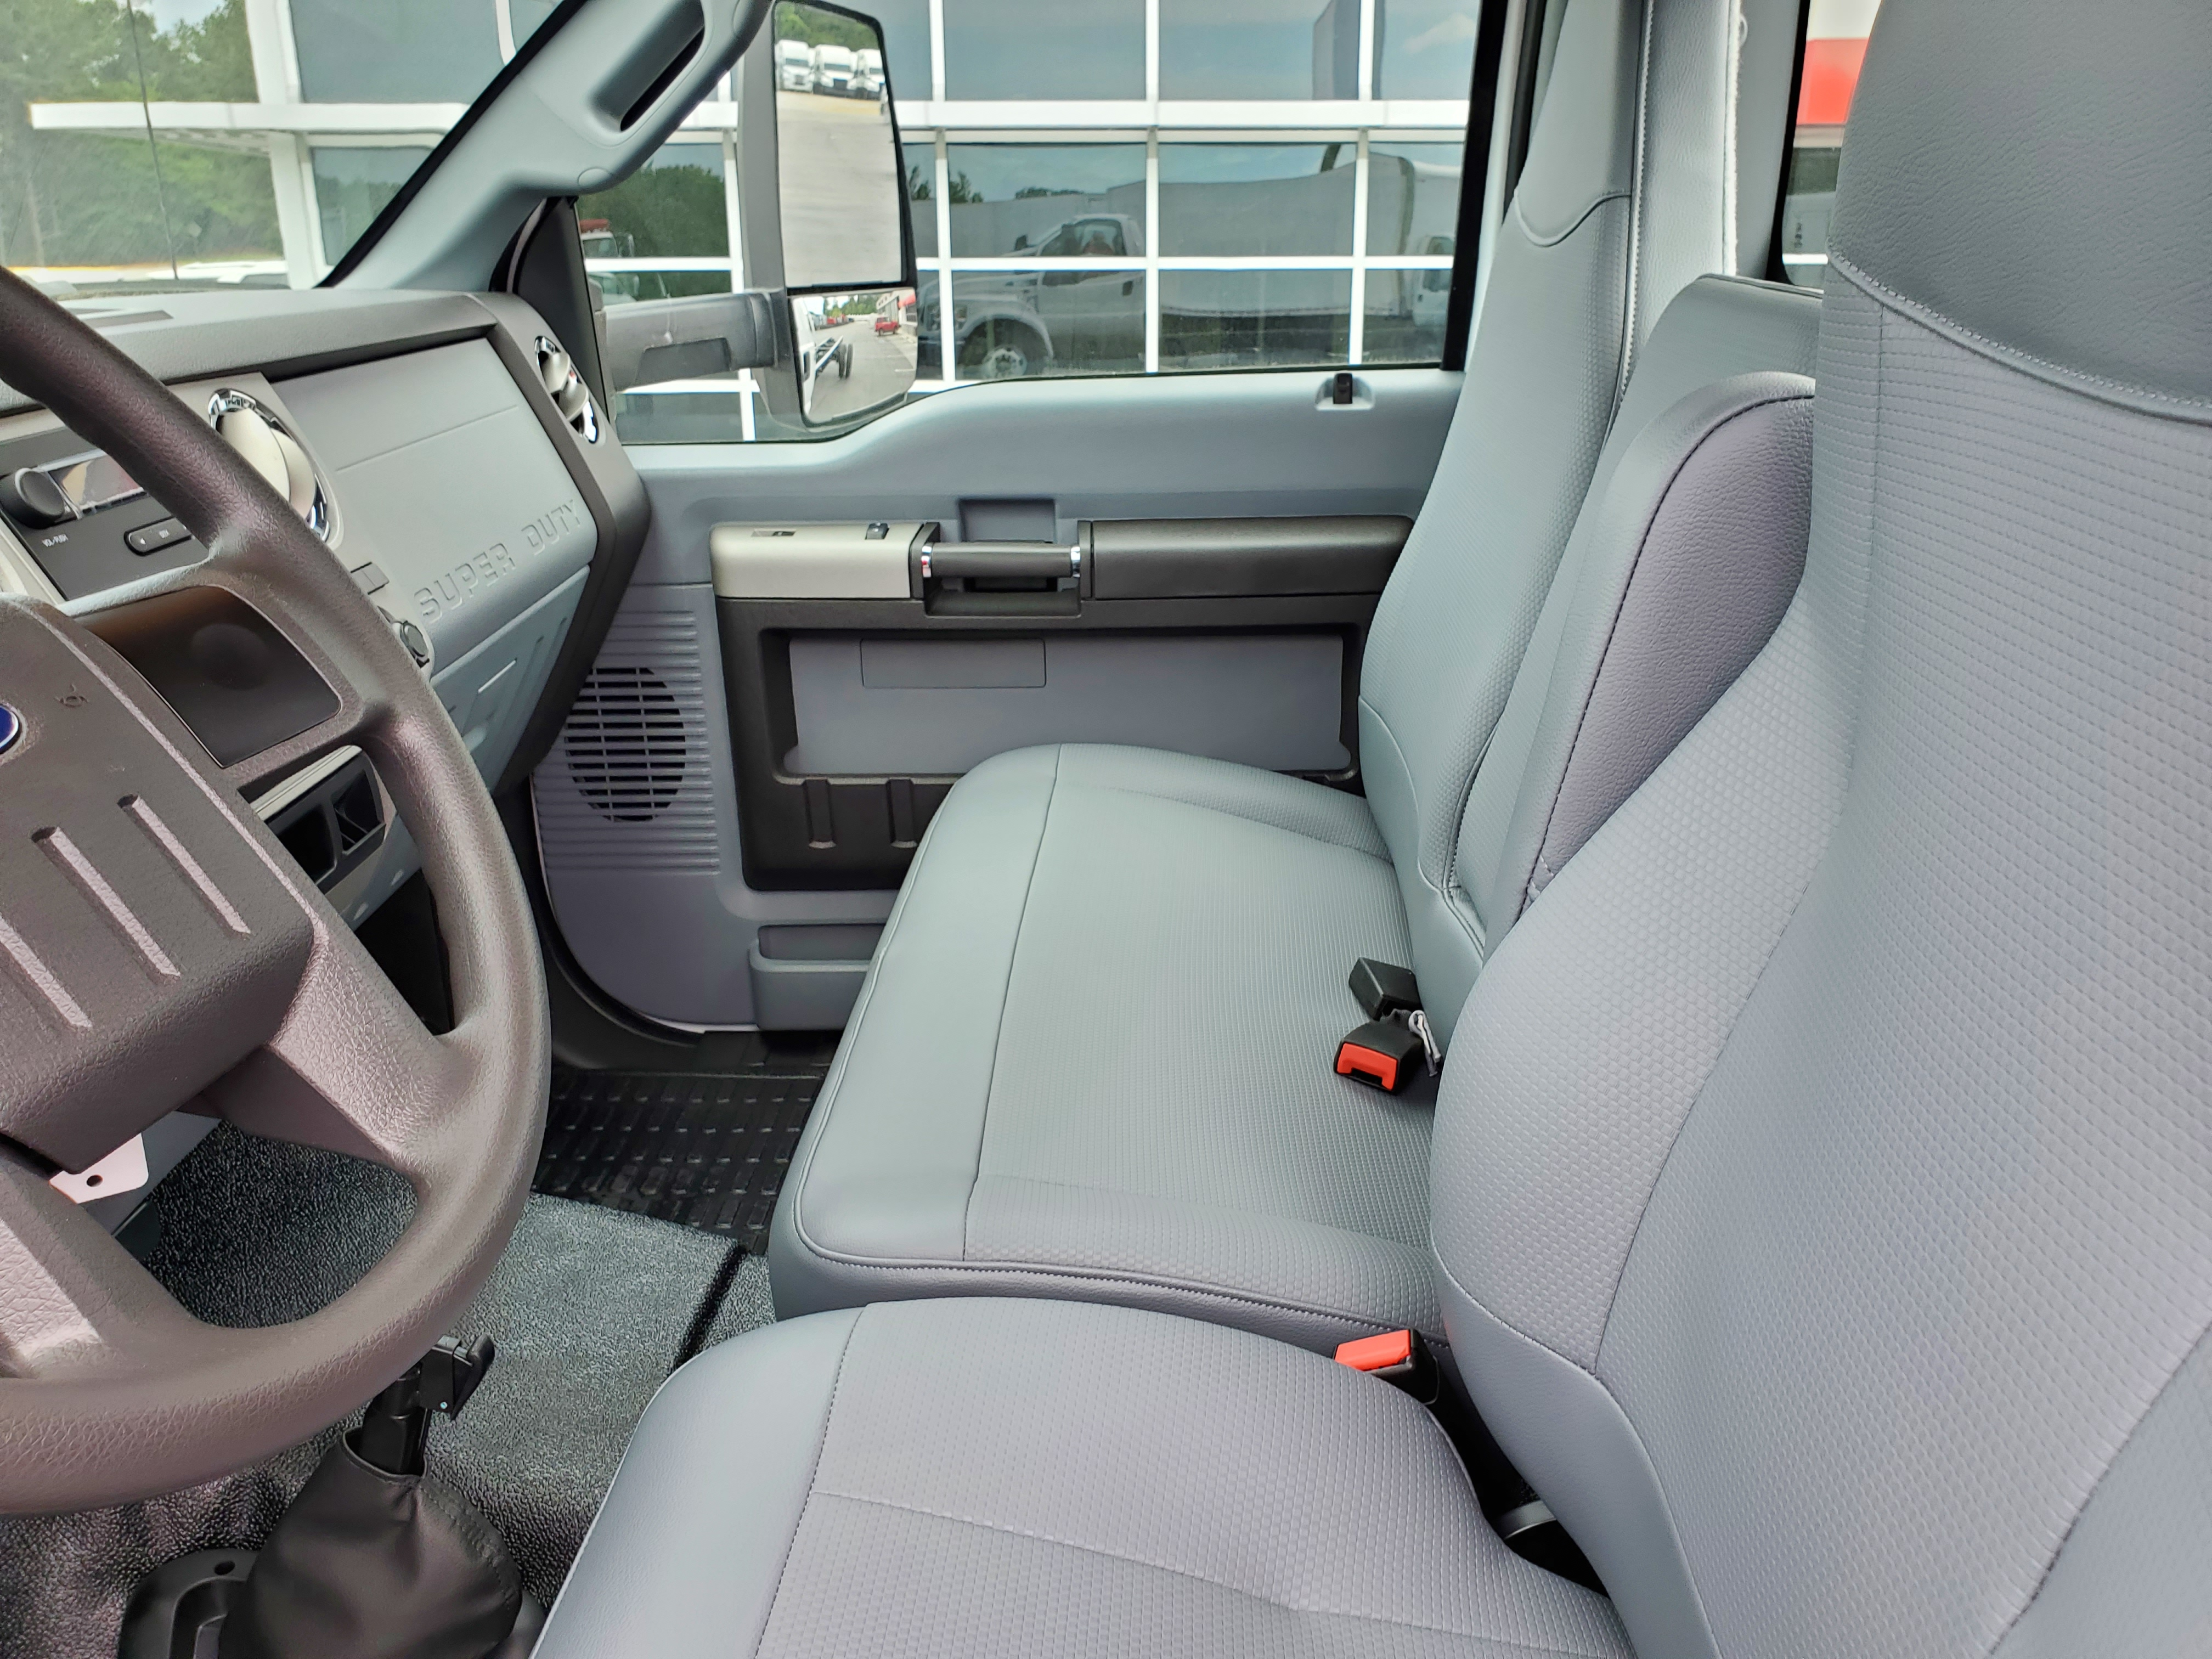 2019 Ford F-750 Regular Cab DRW 4x2, Cab Chassis #KDF14458 - photo 7